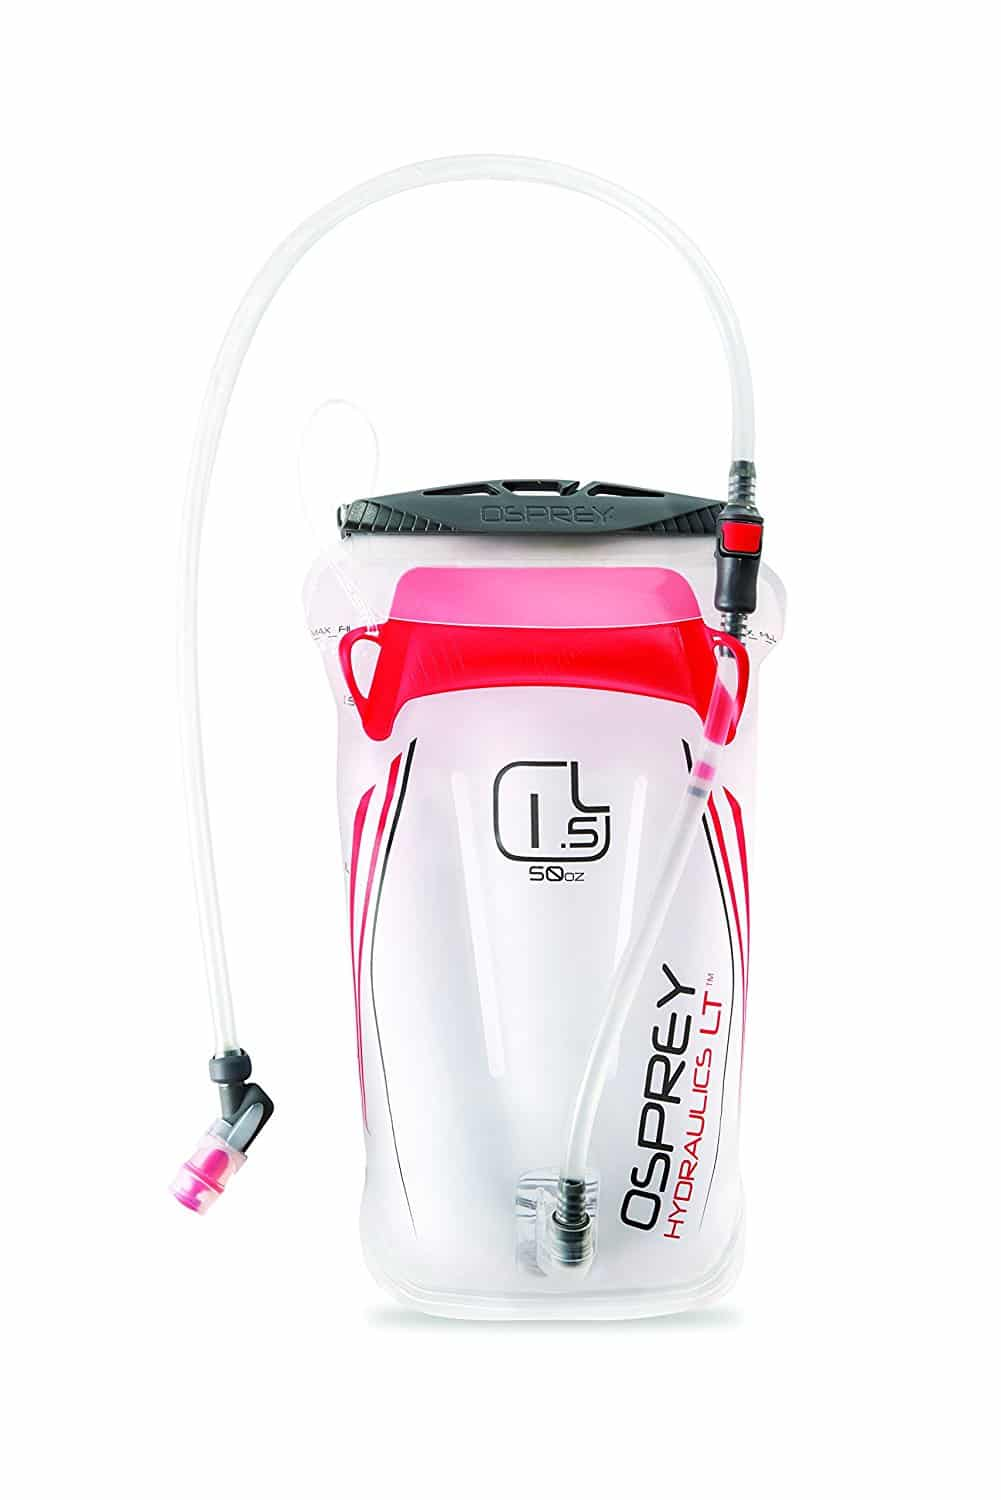 hydration bladder, water bladder, best hydration bladder, hiking water bladder, best water bladder, hydration system reviews, best hydration reservoir, osprey water bladder, osprey hydration bladder, hydration bladder backpack, 3l hydration bladder, best water bladder for backpacking, water bladder backpack, hydration reservoir, source hydration vs camelbak, 2l hydration bladder, what size hydration bladder should i get, 3 liter hydration bladder, 2 liter hydration bladder, water bag for hiking, water bladder bag, best water bladder for hunting, bladder backpack, best 2l hydration bladder, deuter streamer 2.0 hydration bladder, miracol hydration backpack, hydration water bladder, insulated hydration bladder, small water bladder, pressurized water bladder, water reservoir backpack, hiking backpack with water bladder, best bite valve